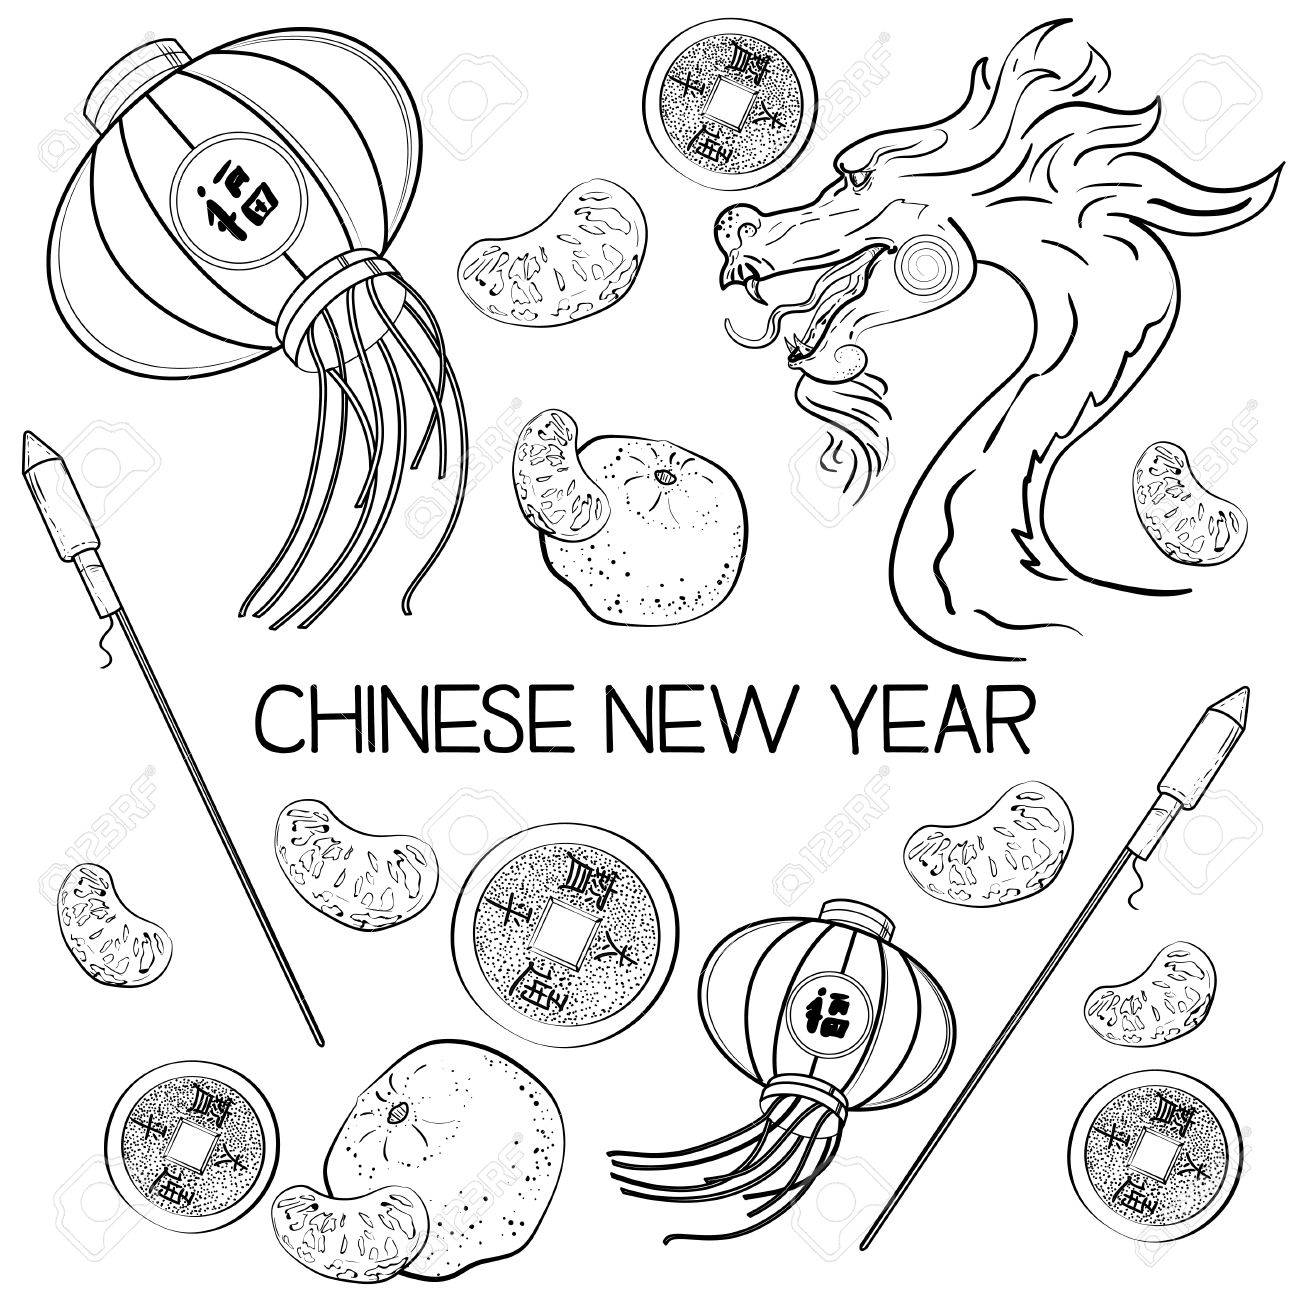 Traditional symbols of chinese new year decorations gifts food traditional symbols of chinese new year decorations gifts food vector illustration stock vector buycottarizona Gallery